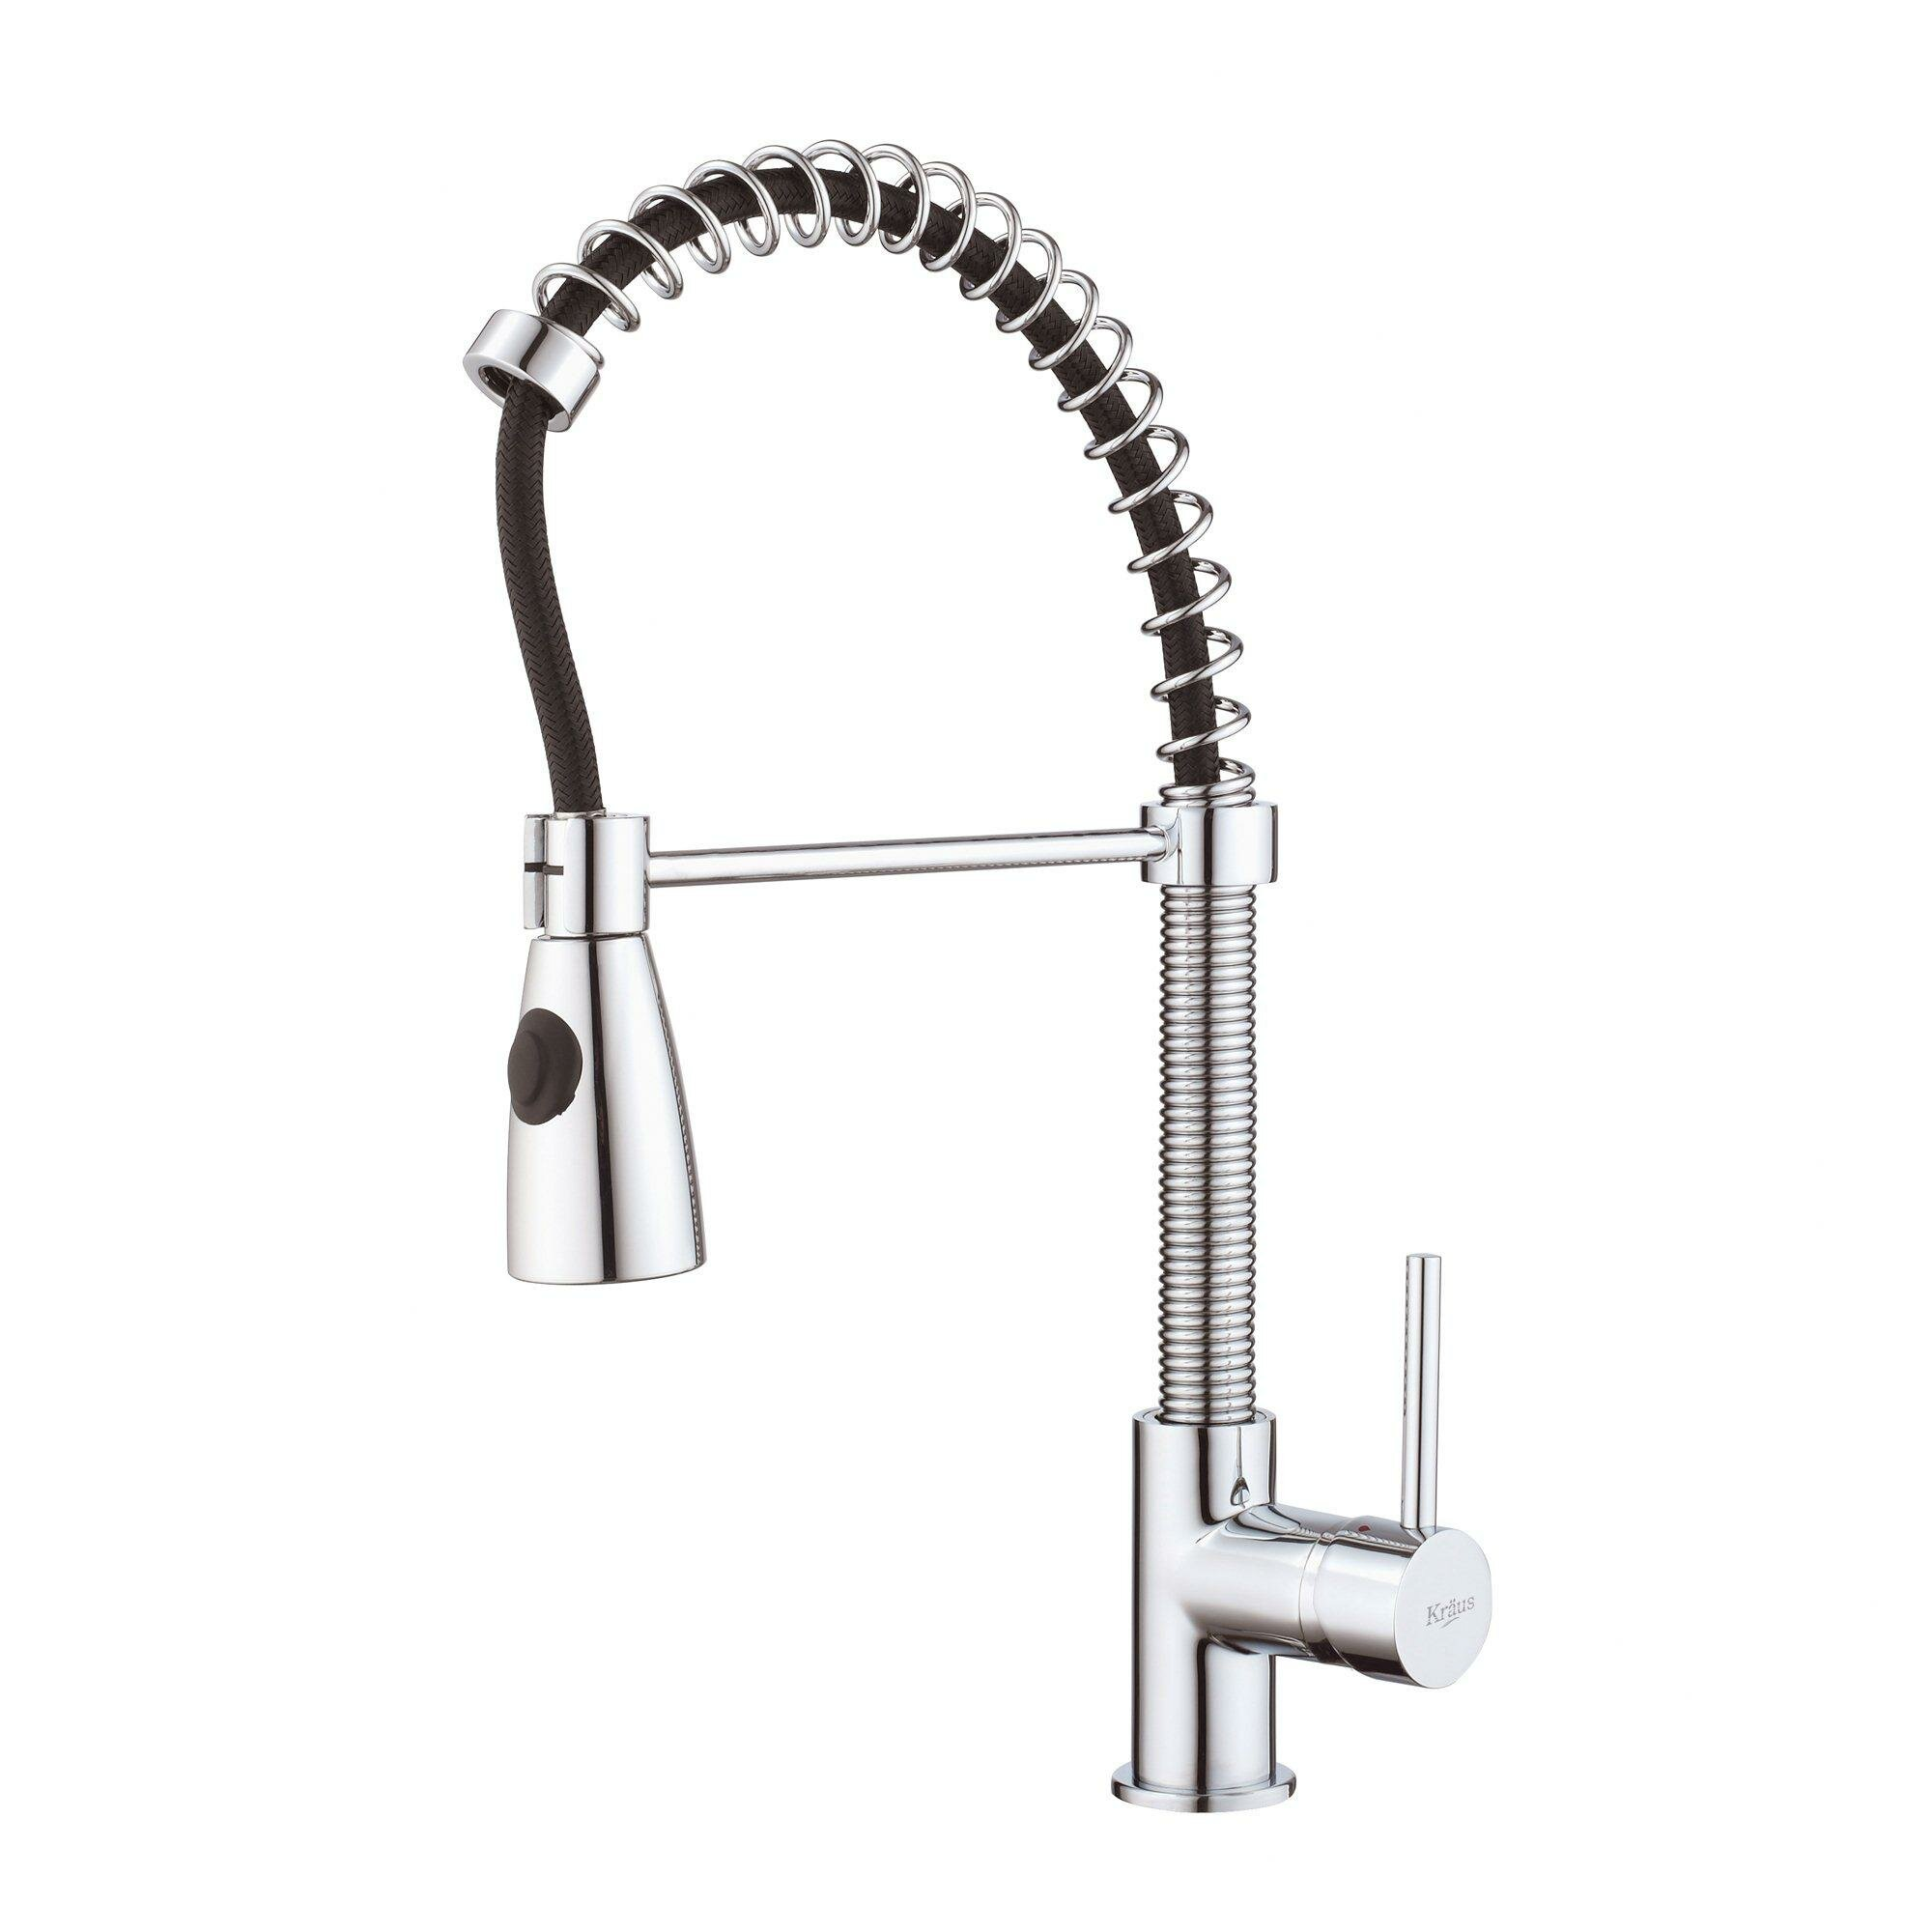 kraus kitchen faucets reviews kraus 32 quot x 19 quot undermount kitchen sink with faucet and soap dispenser reviews wayfair 8247